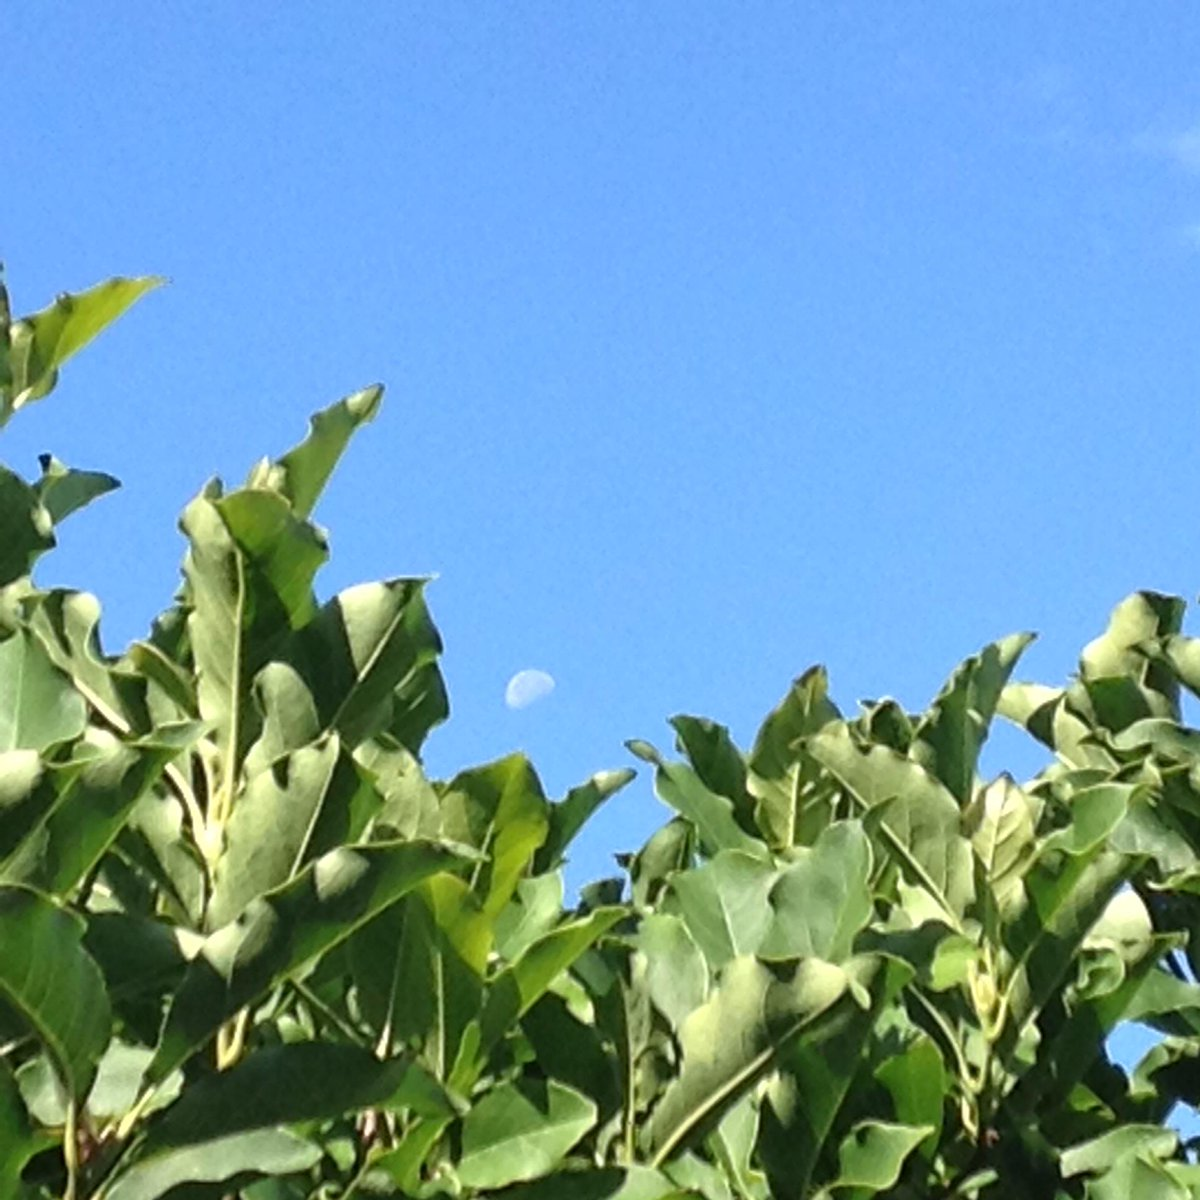 faint half moon in blue daytime sky above magnolia branches